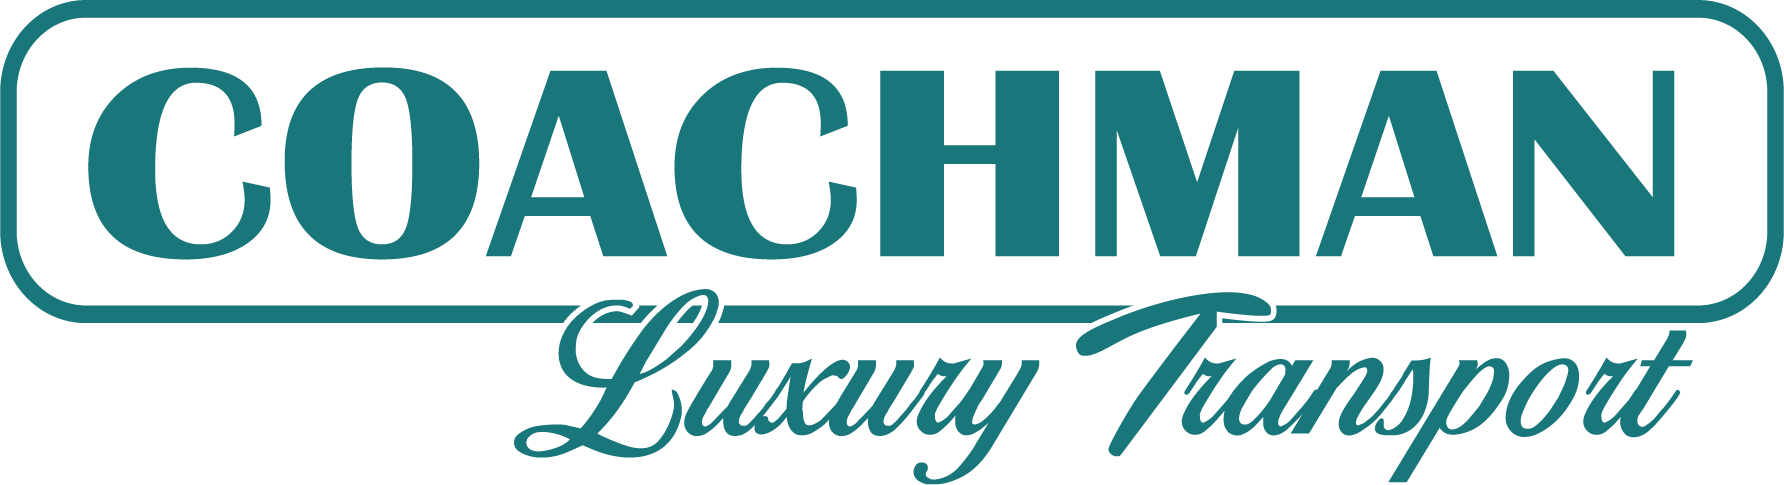 coachman luxury logo